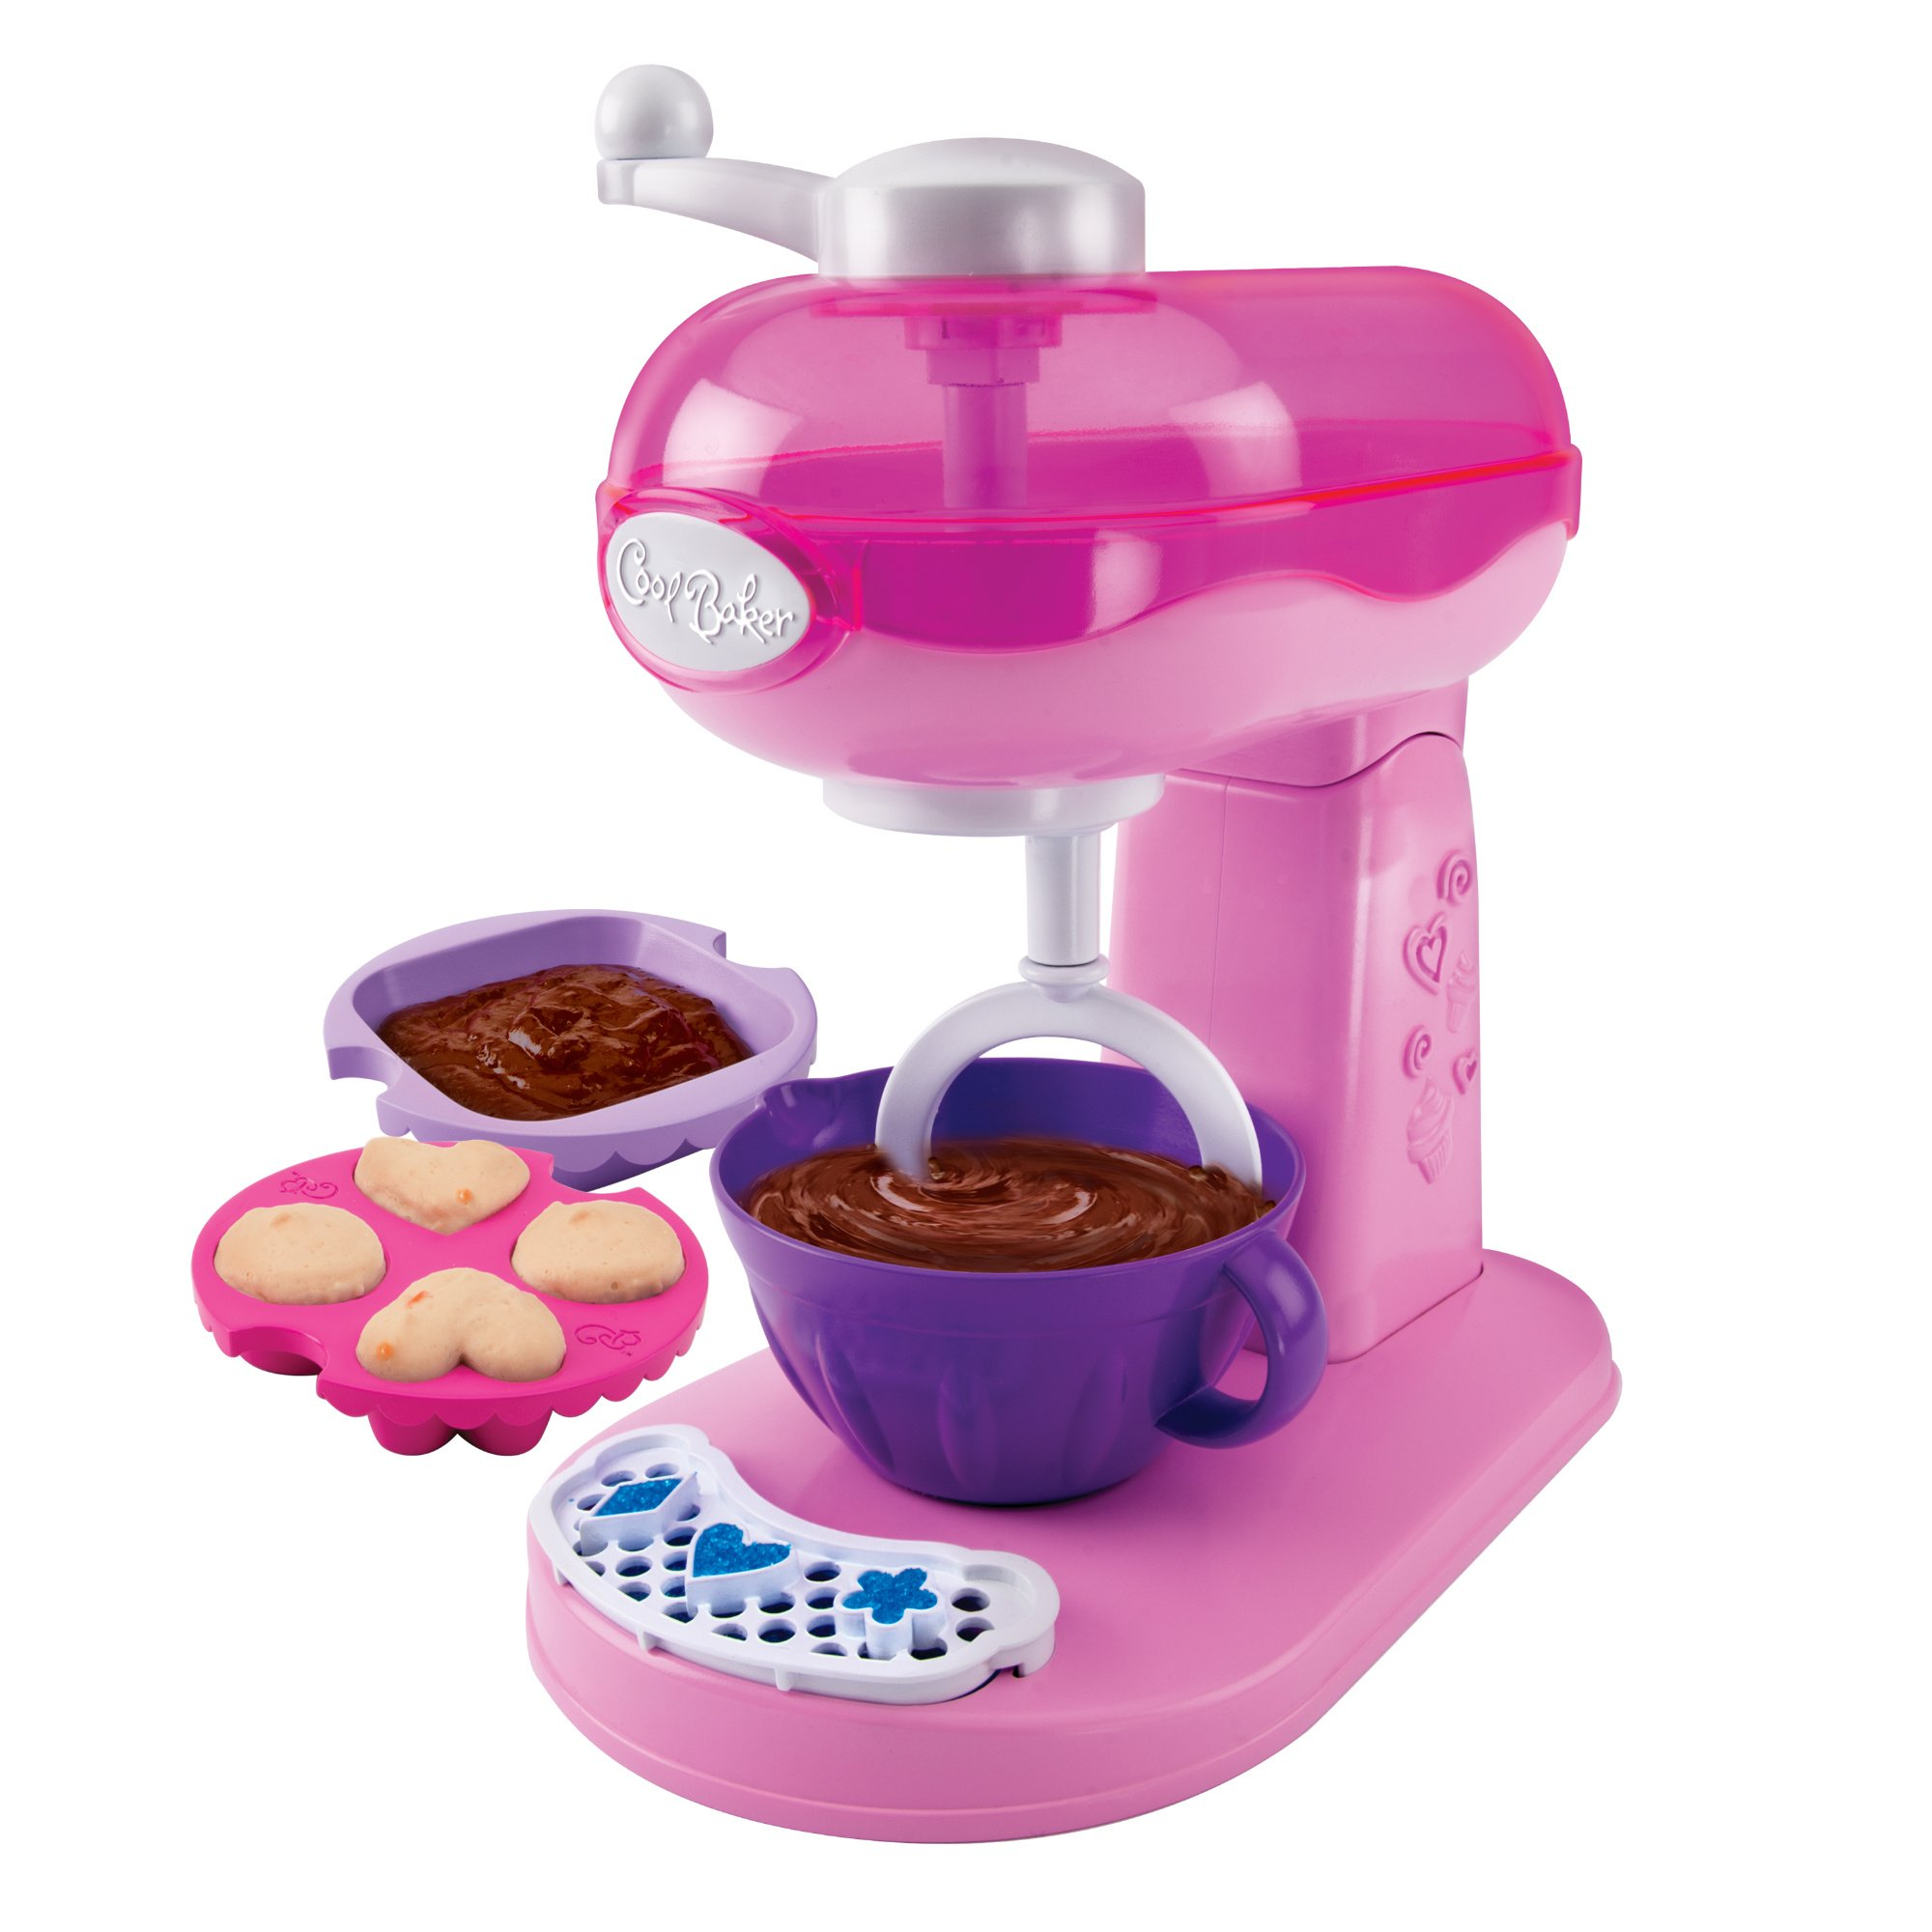 Cool Baker Magic Mixer Maker - Pink by Cool Baker (Image #2)